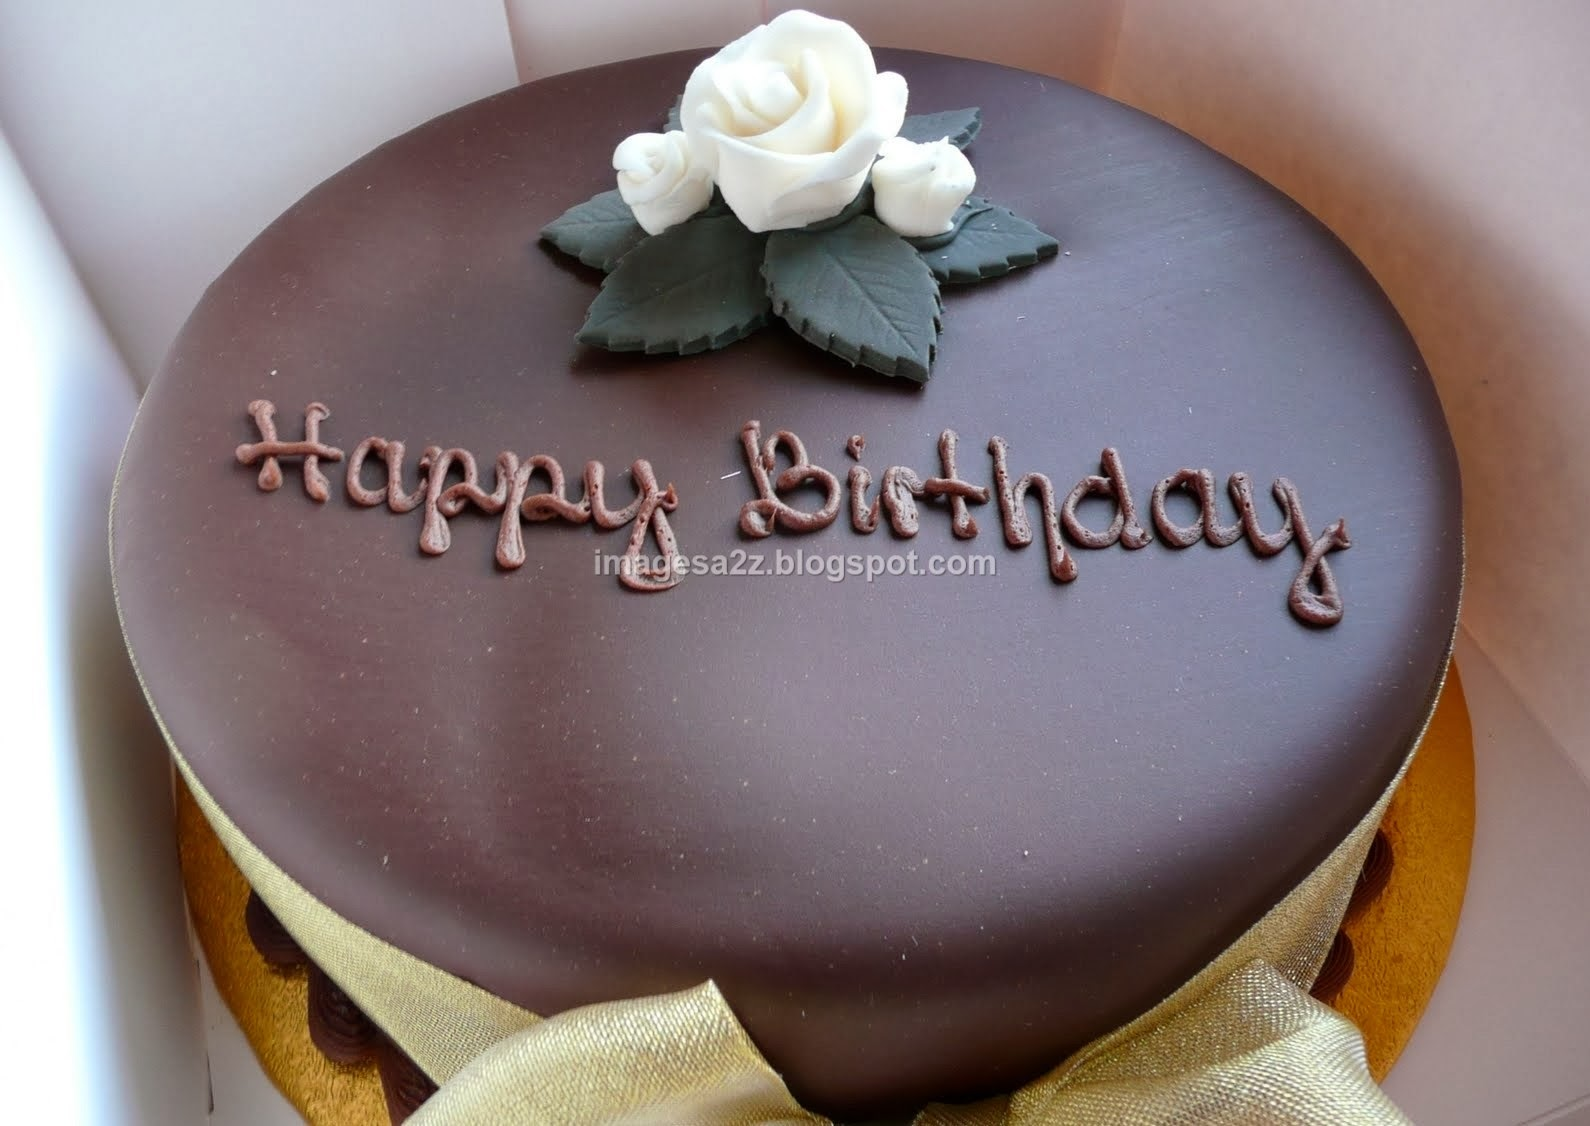 Birthday Quotes With Images Of Cake : attractive birthday wishes for friends cake birthday ...